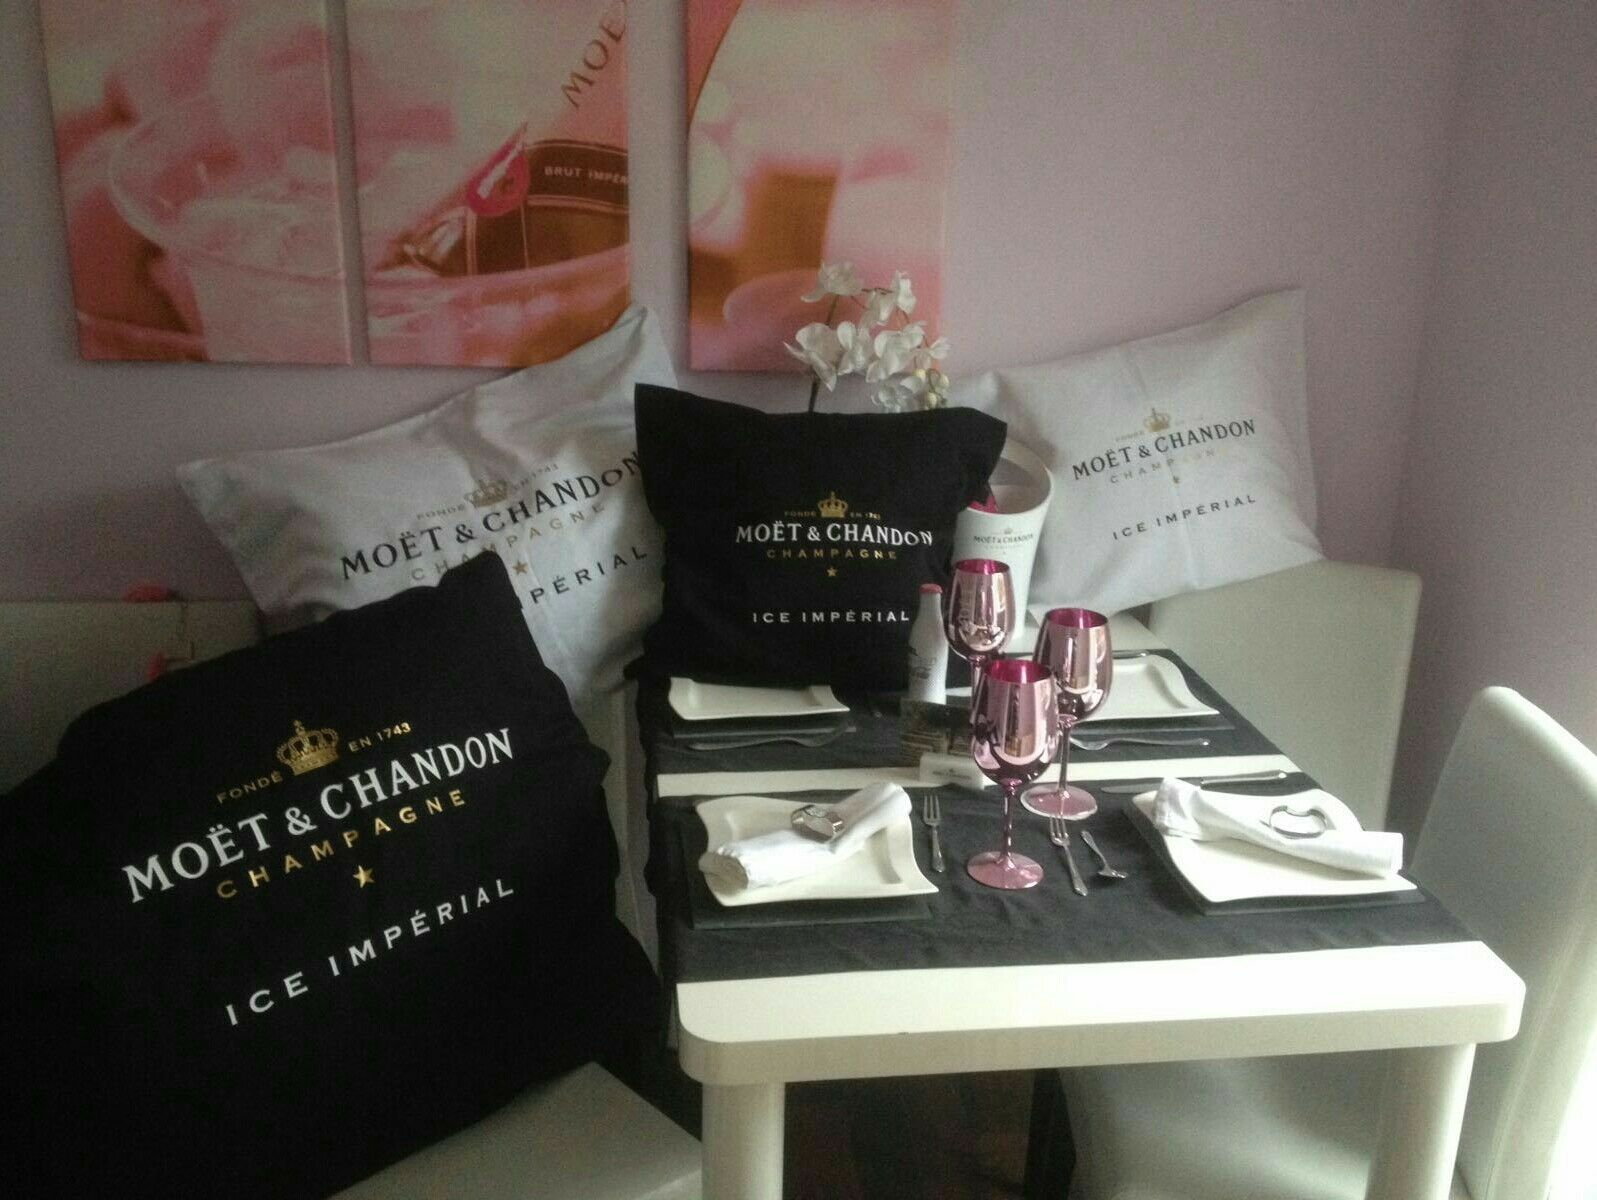 moet chandon ice imperial lounge kissen 80x80 party vip champagner 1 x bezug eur 5 05. Black Bedroom Furniture Sets. Home Design Ideas